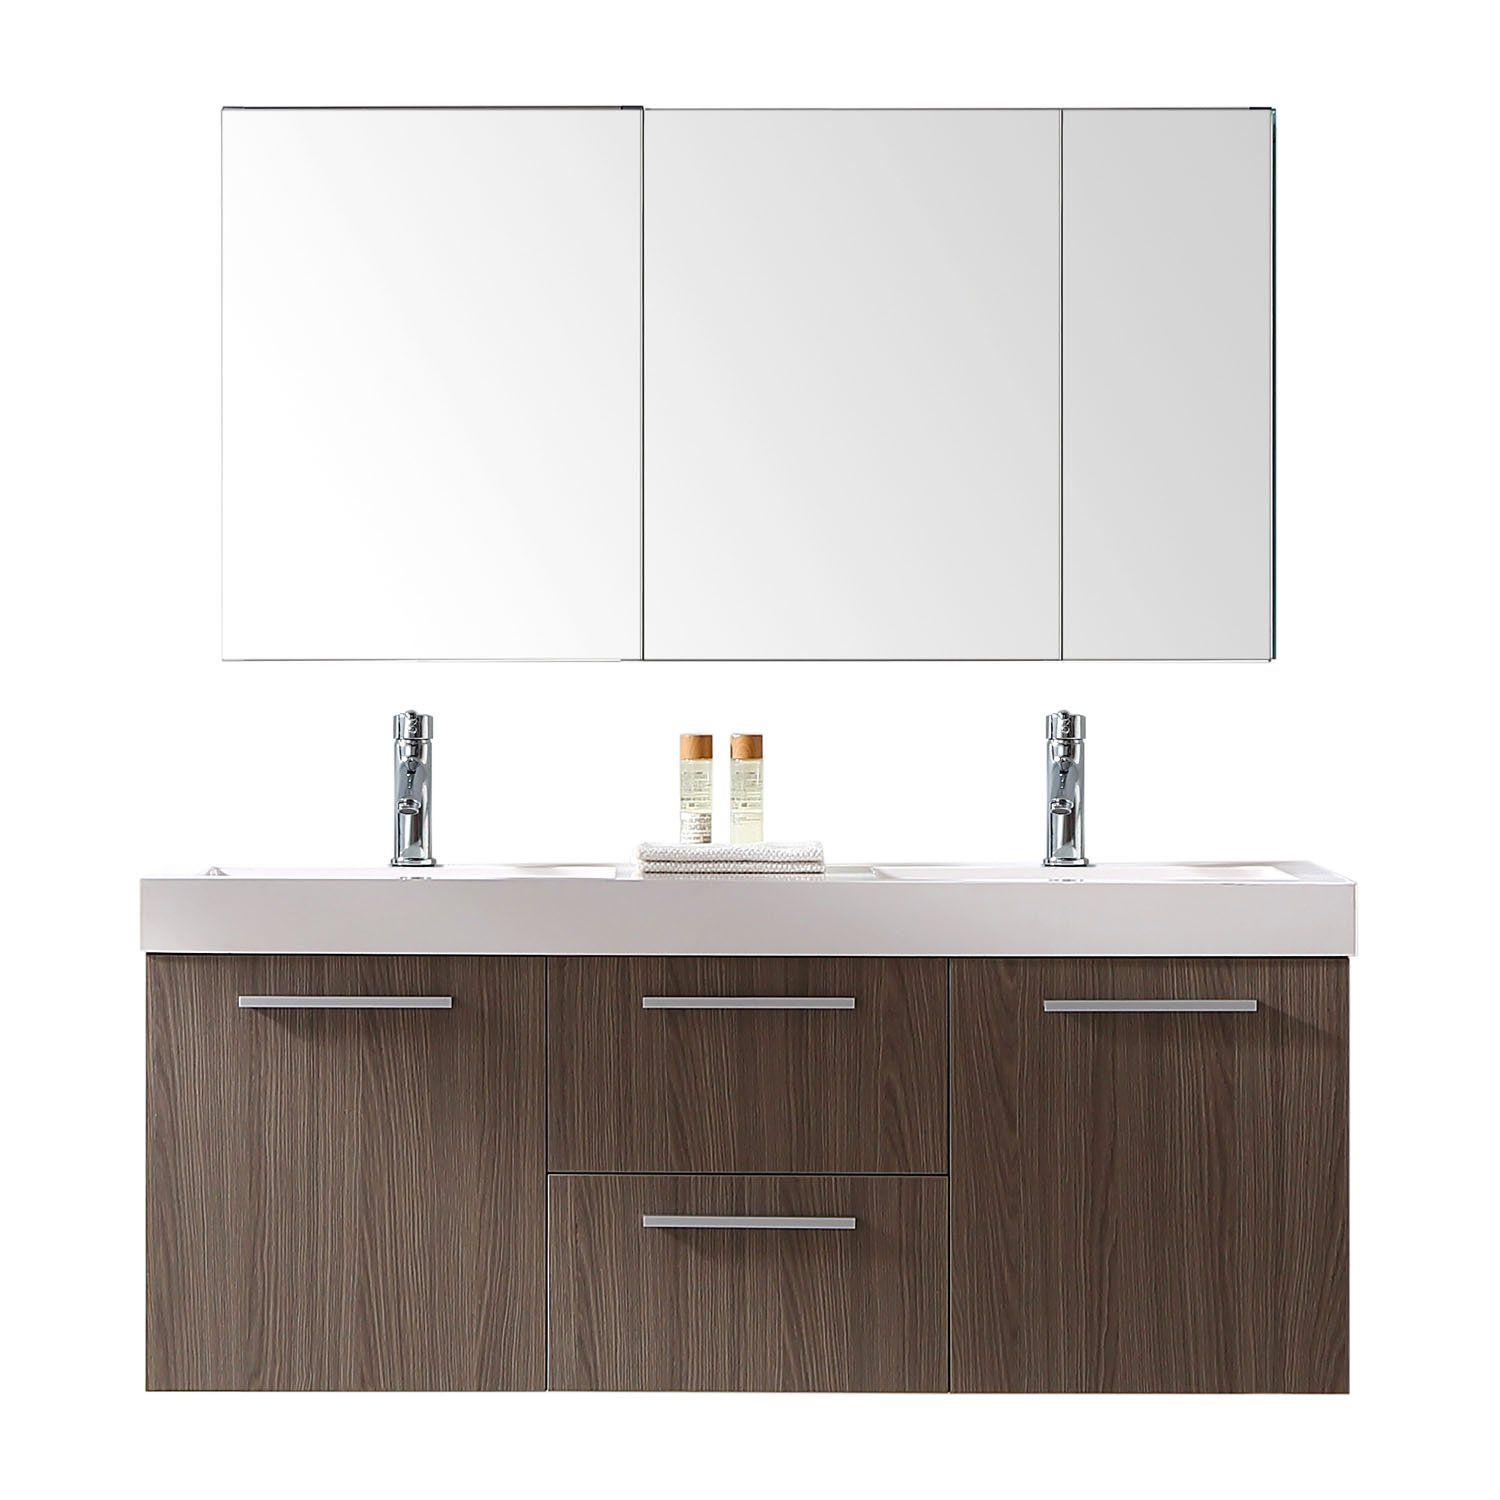 Virtu USA JD-50154-GO Midori Double Bathroom Vanity with White Polymarble Top/Square Sink with Polished Chrome Faucet, 54'', Grey Oak